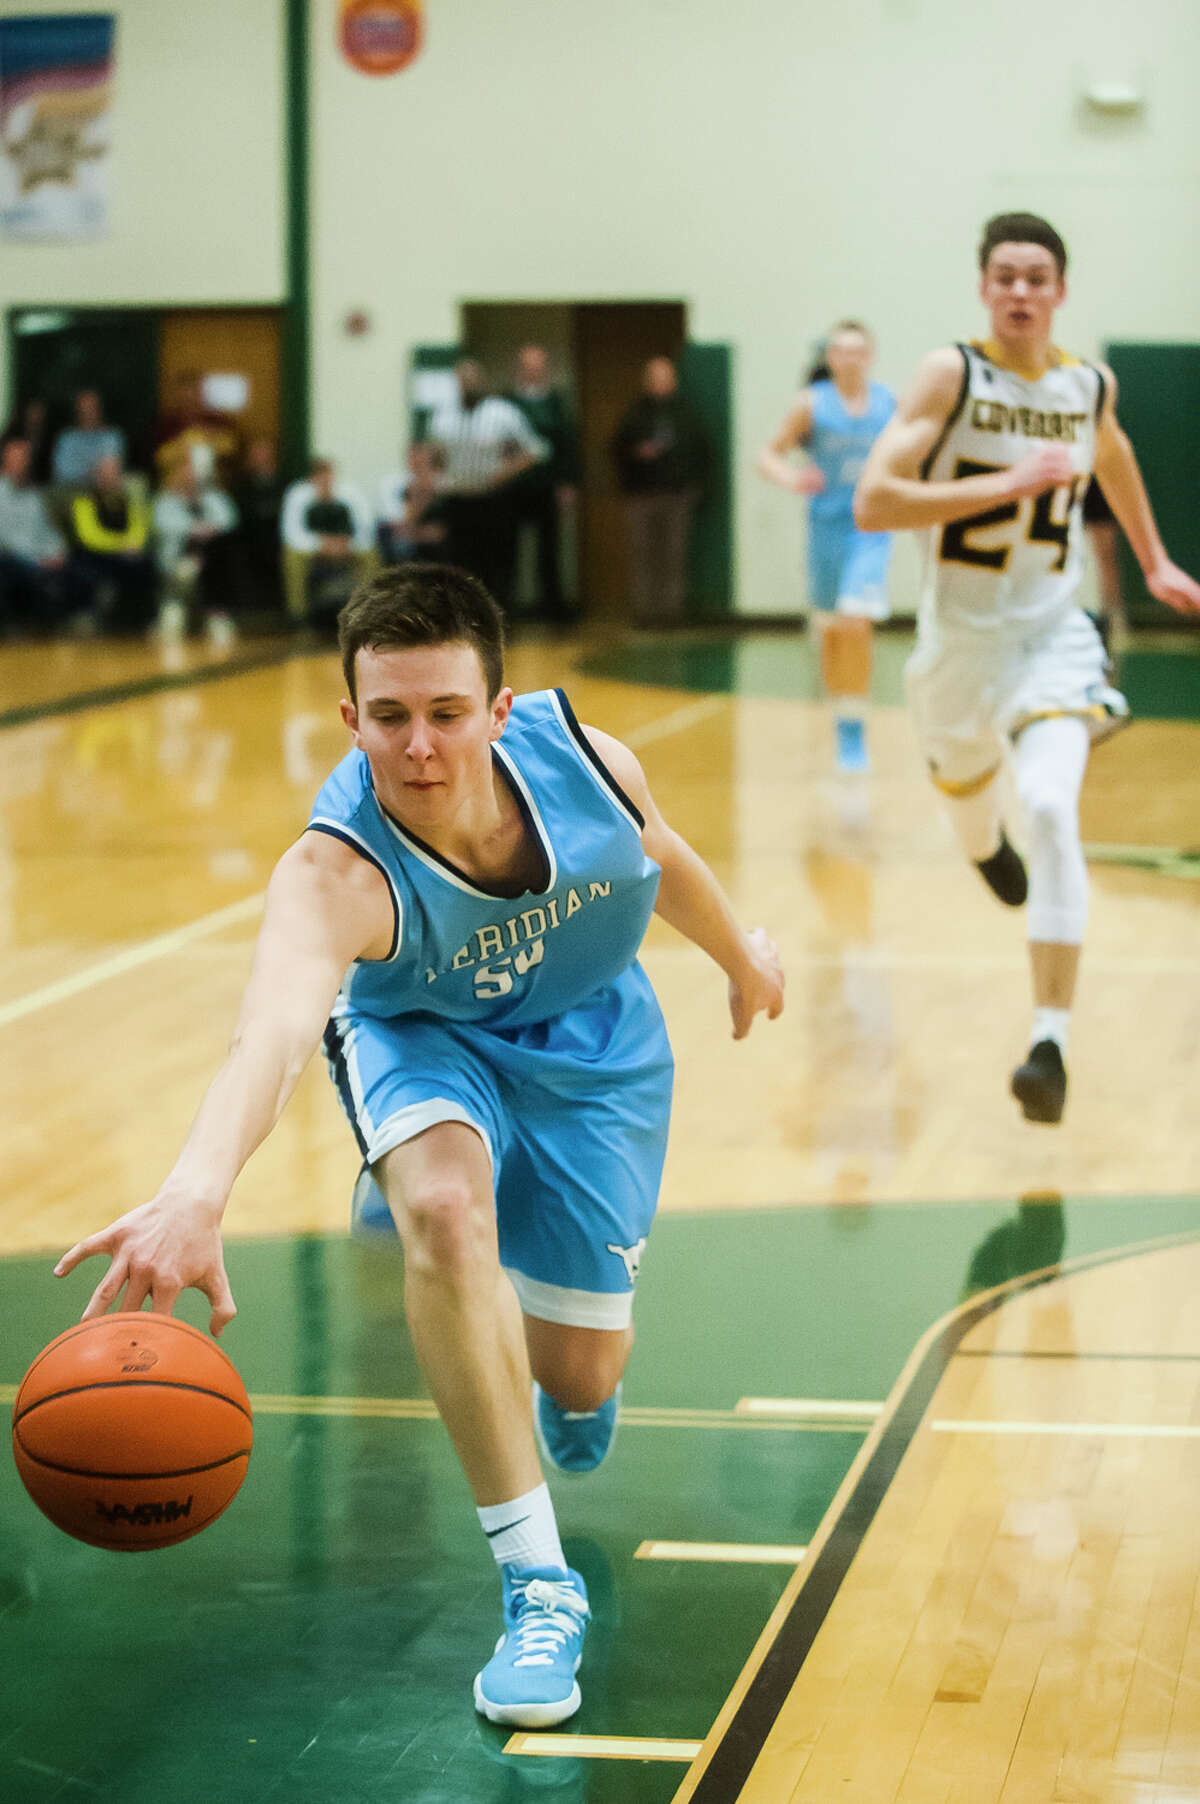 Meridian junior Gabe Brady lunges forward to keep the ball in bounds during the Mustangs' 53-30 loss to Grand Rapids Covenant Christian in the Class C state semifinals on Tuesday, March 20, 2018 at Central Montcalm High School in Stanton. (Katy Kildee/kkildee@mdn.net)